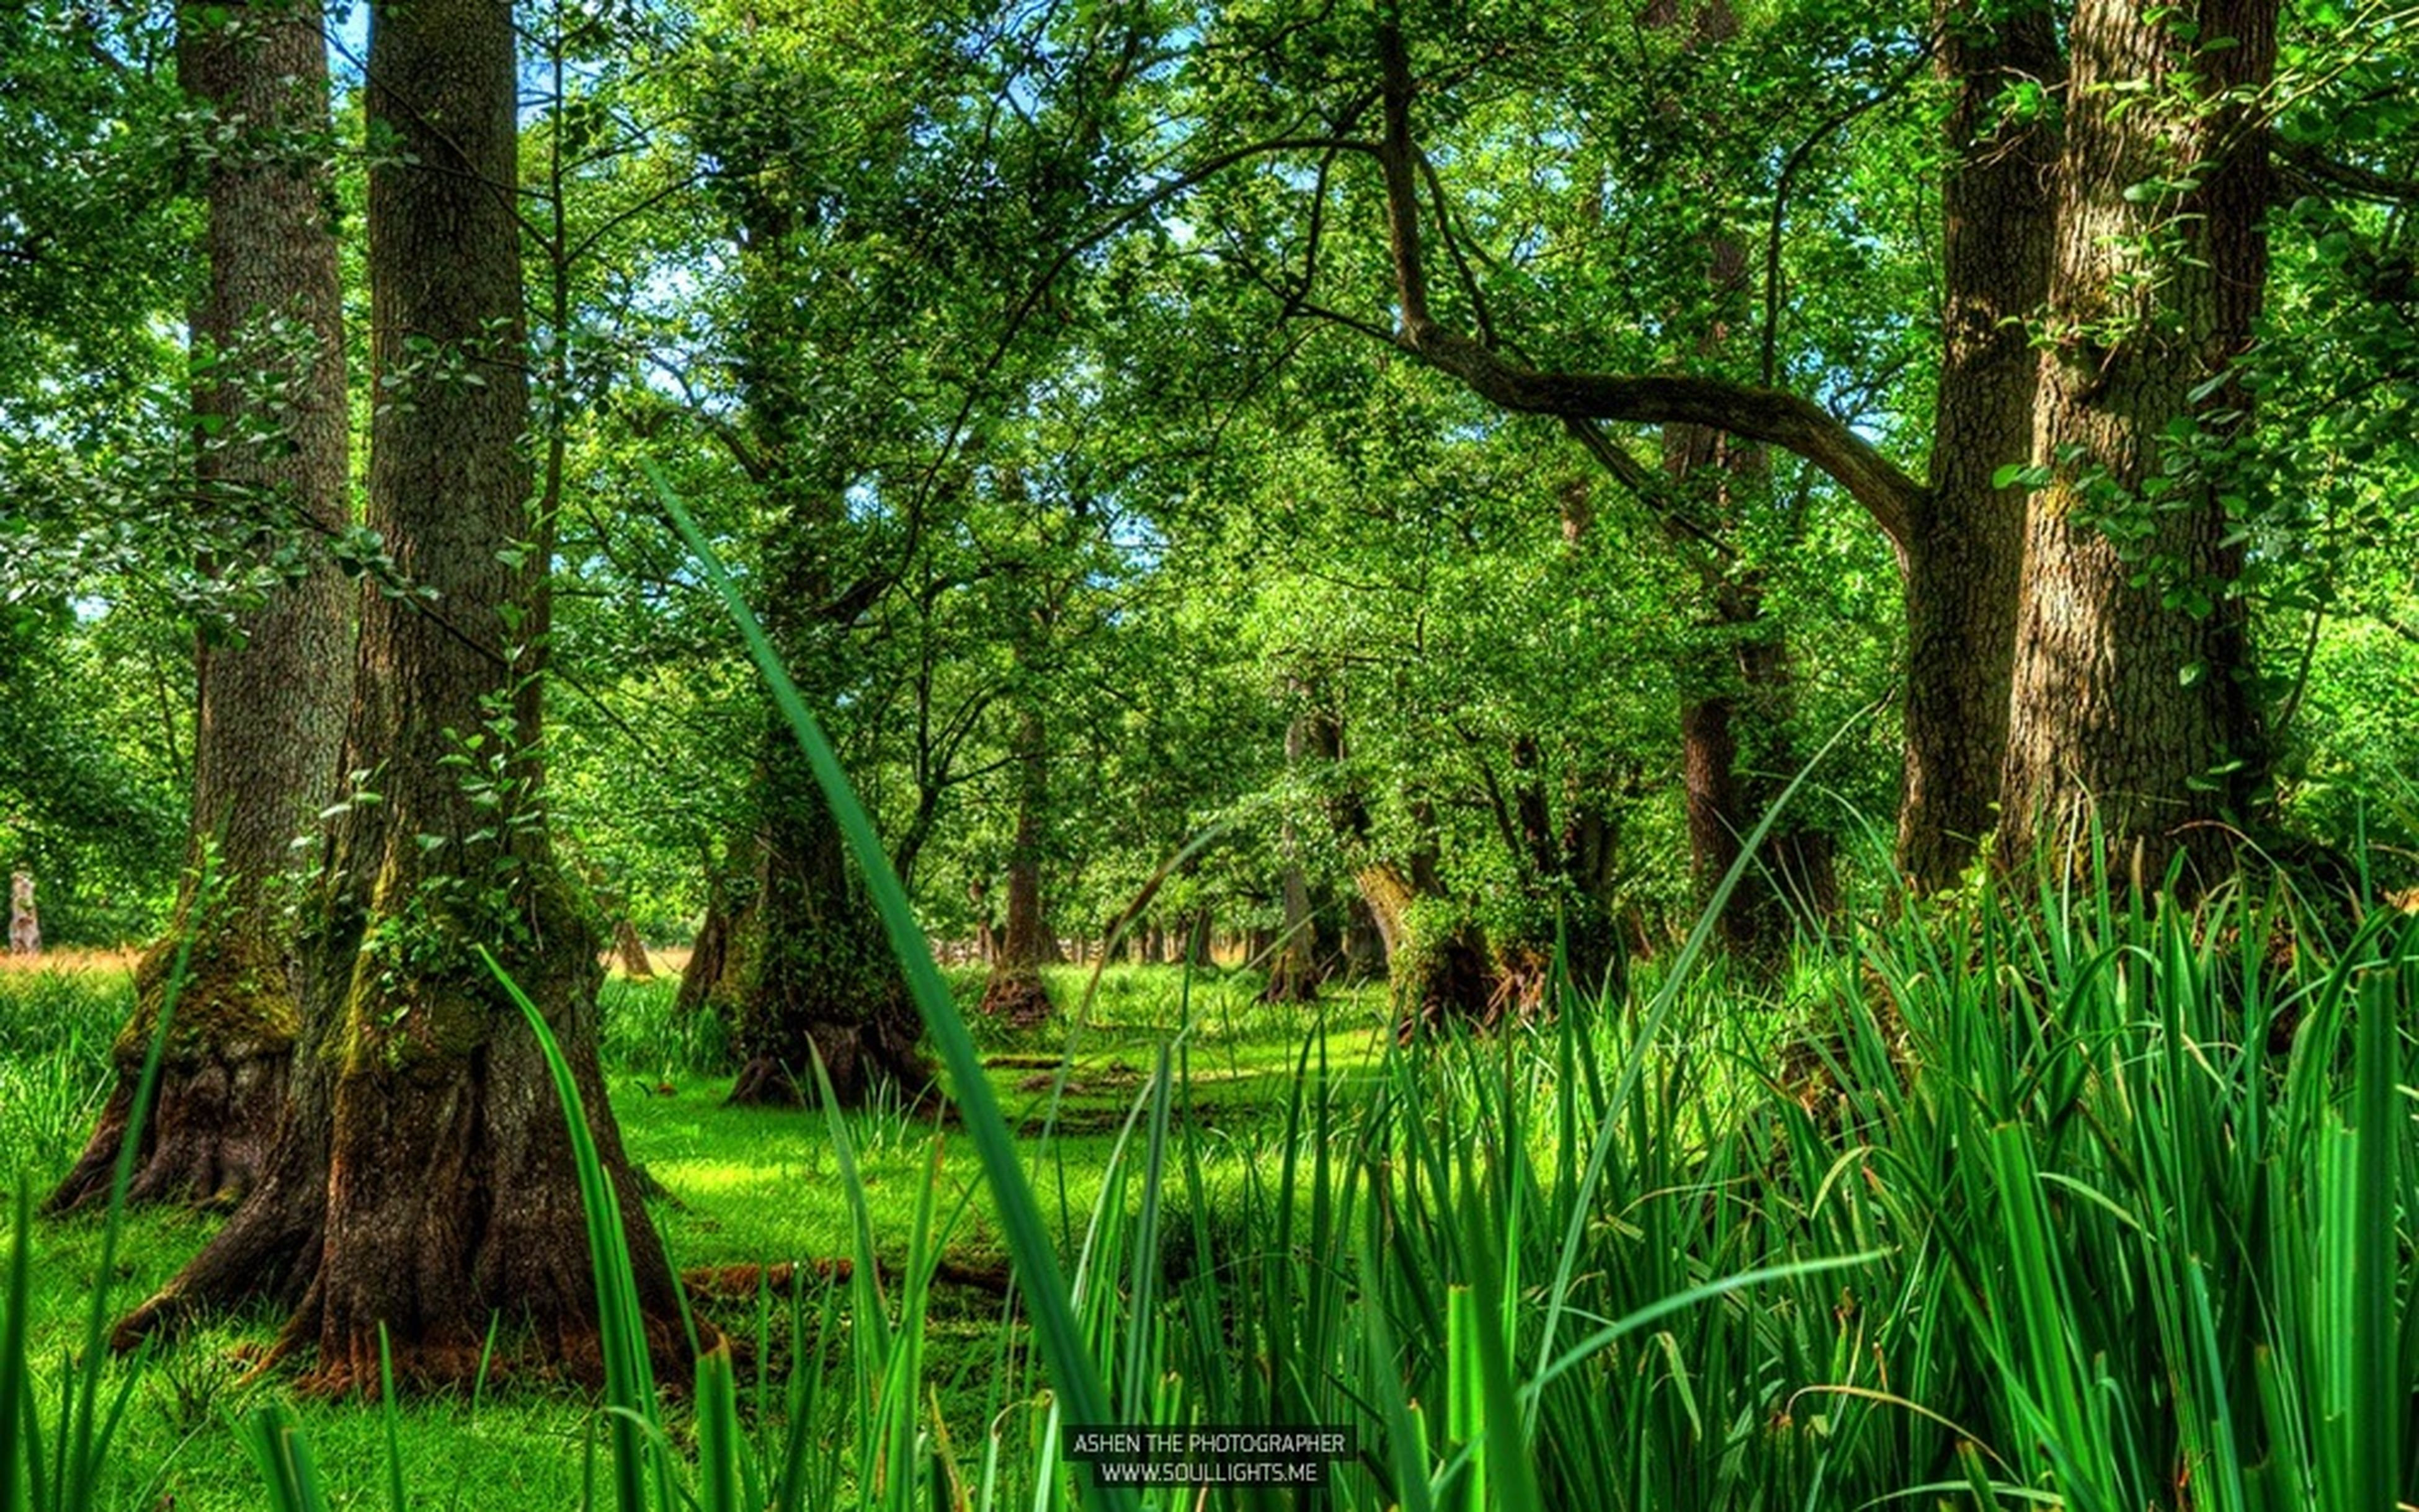 tree, green color, growth, tranquility, tranquil scene, forest, nature, beauty in nature, lush foliage, scenics, tree trunk, grass, woodland, green, landscape, plant, idyllic, branch, non-urban scene, growing